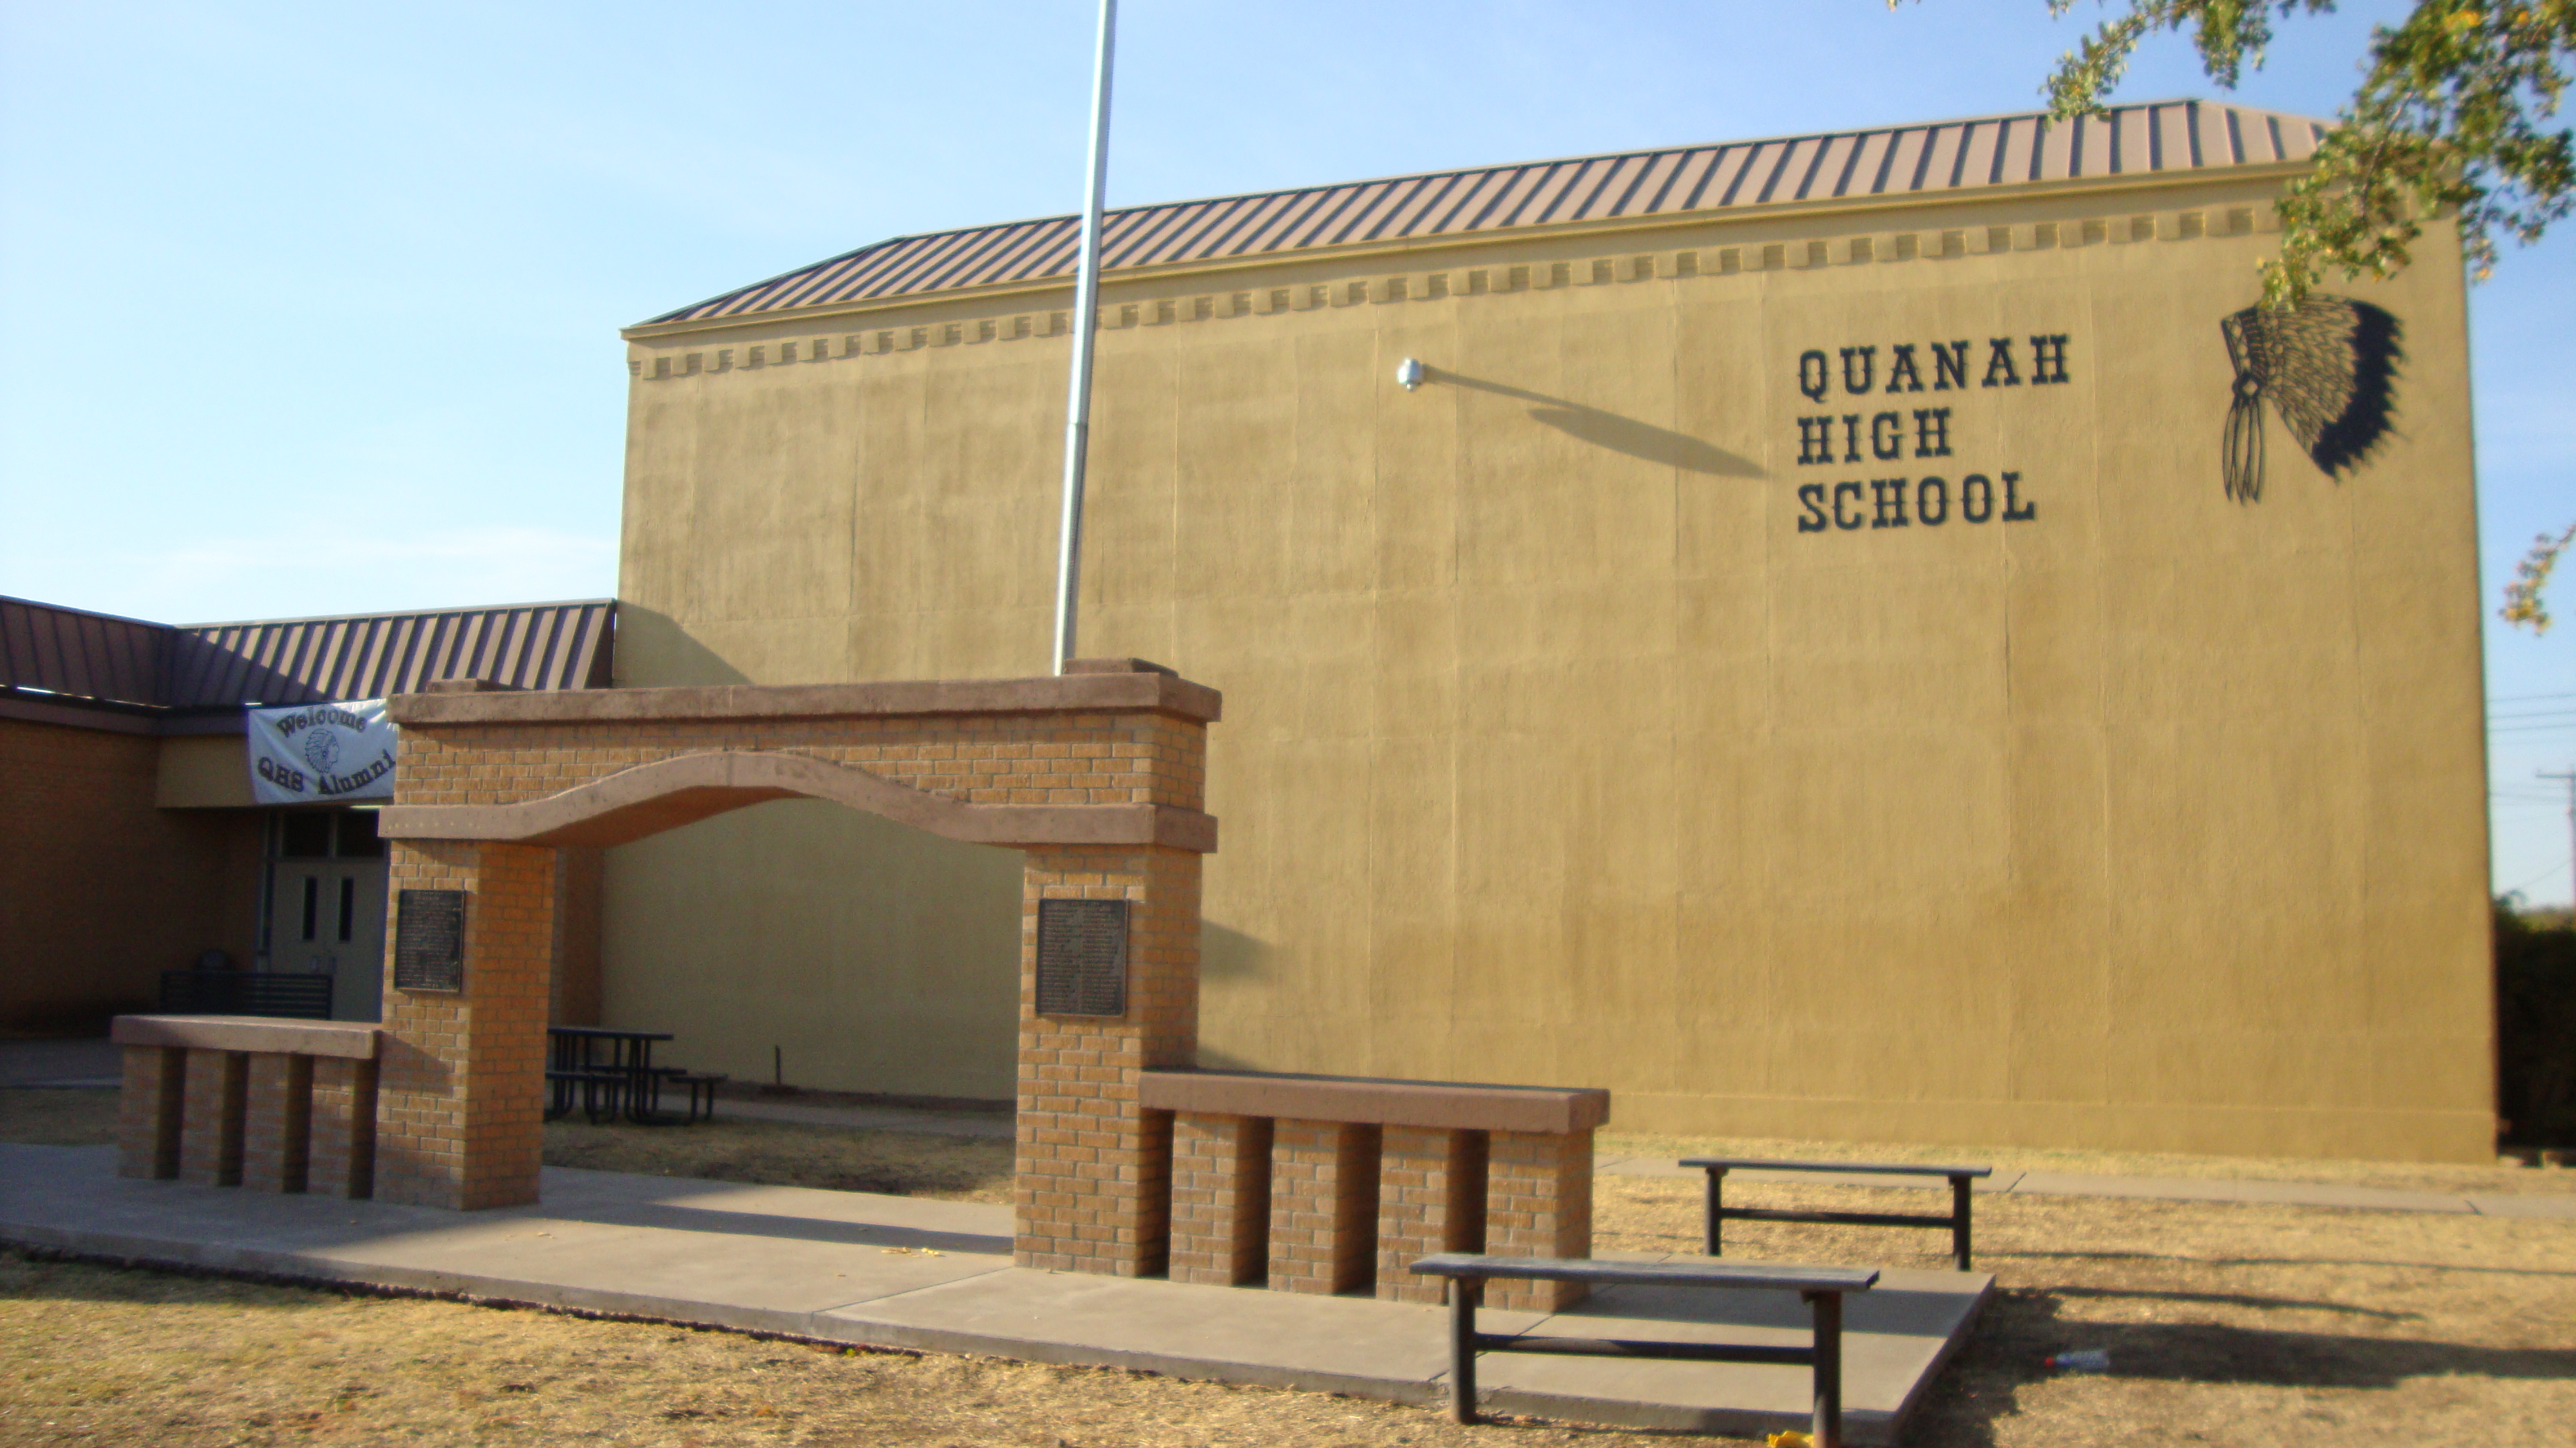 Quanah, Texas – History in Memories